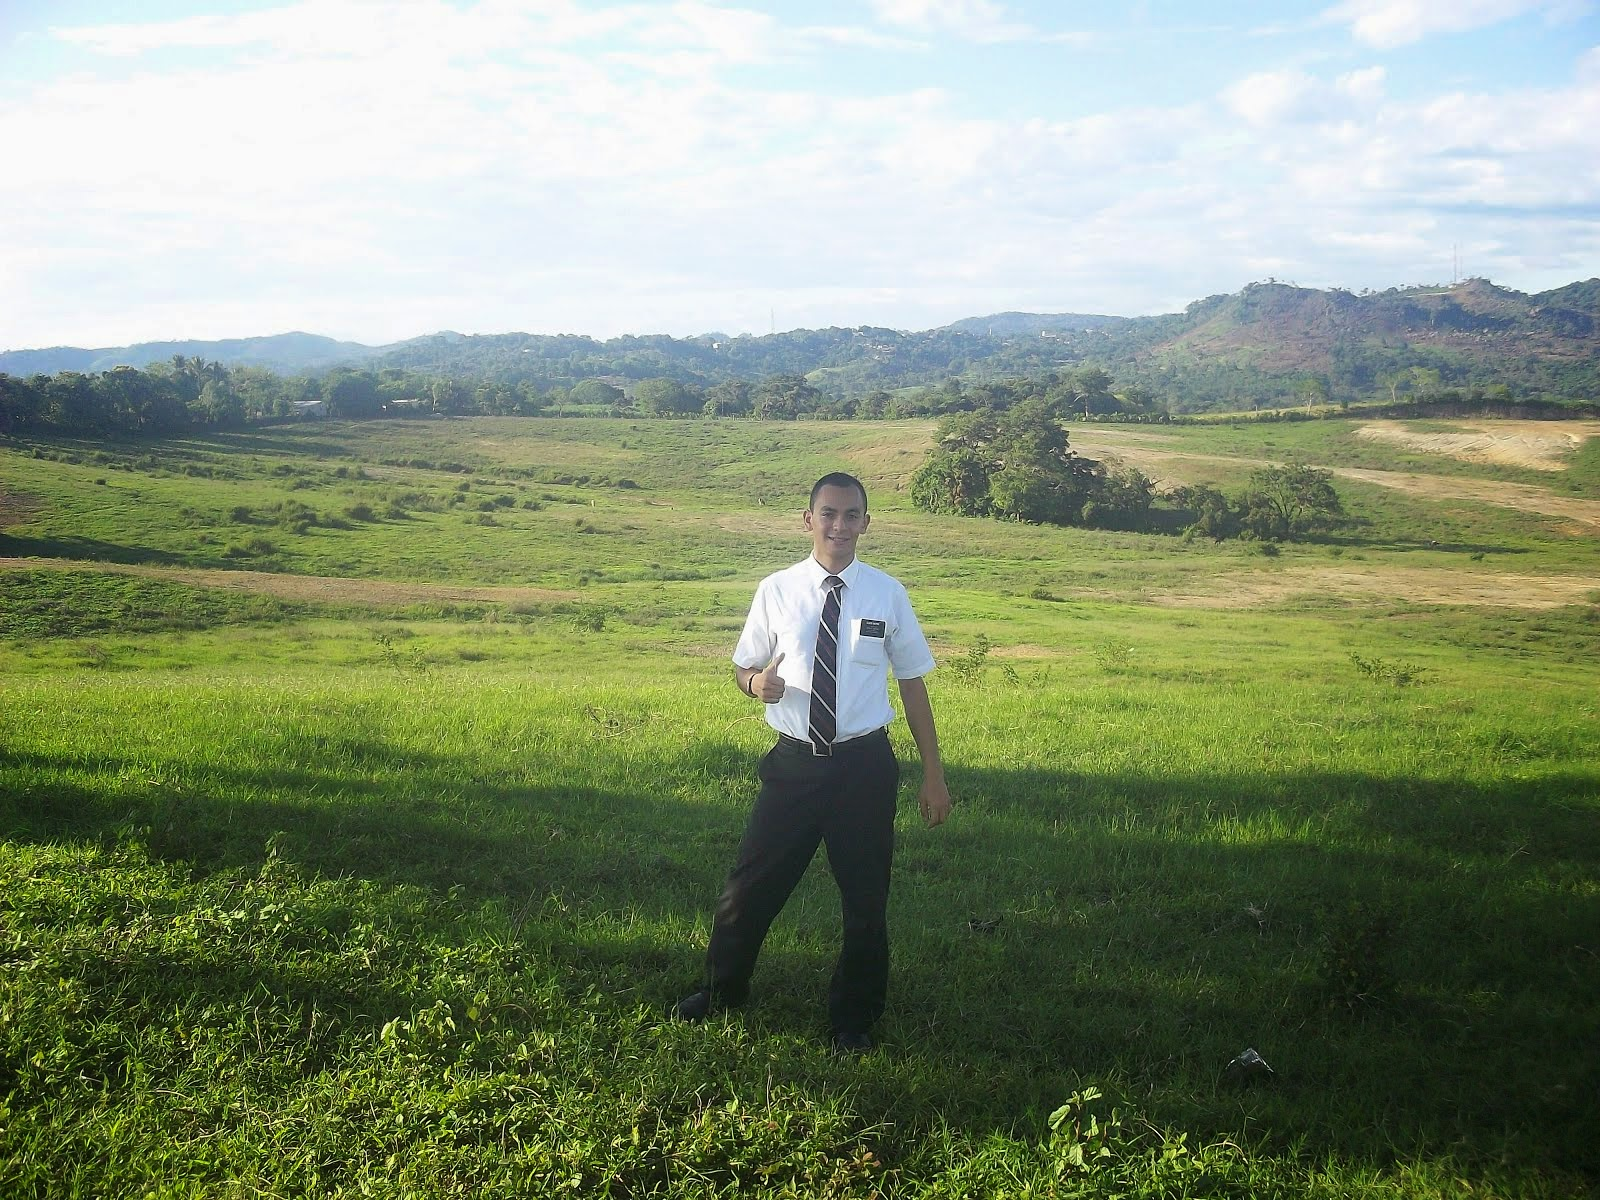 Elder Haynie in Ilobasco May 2014.